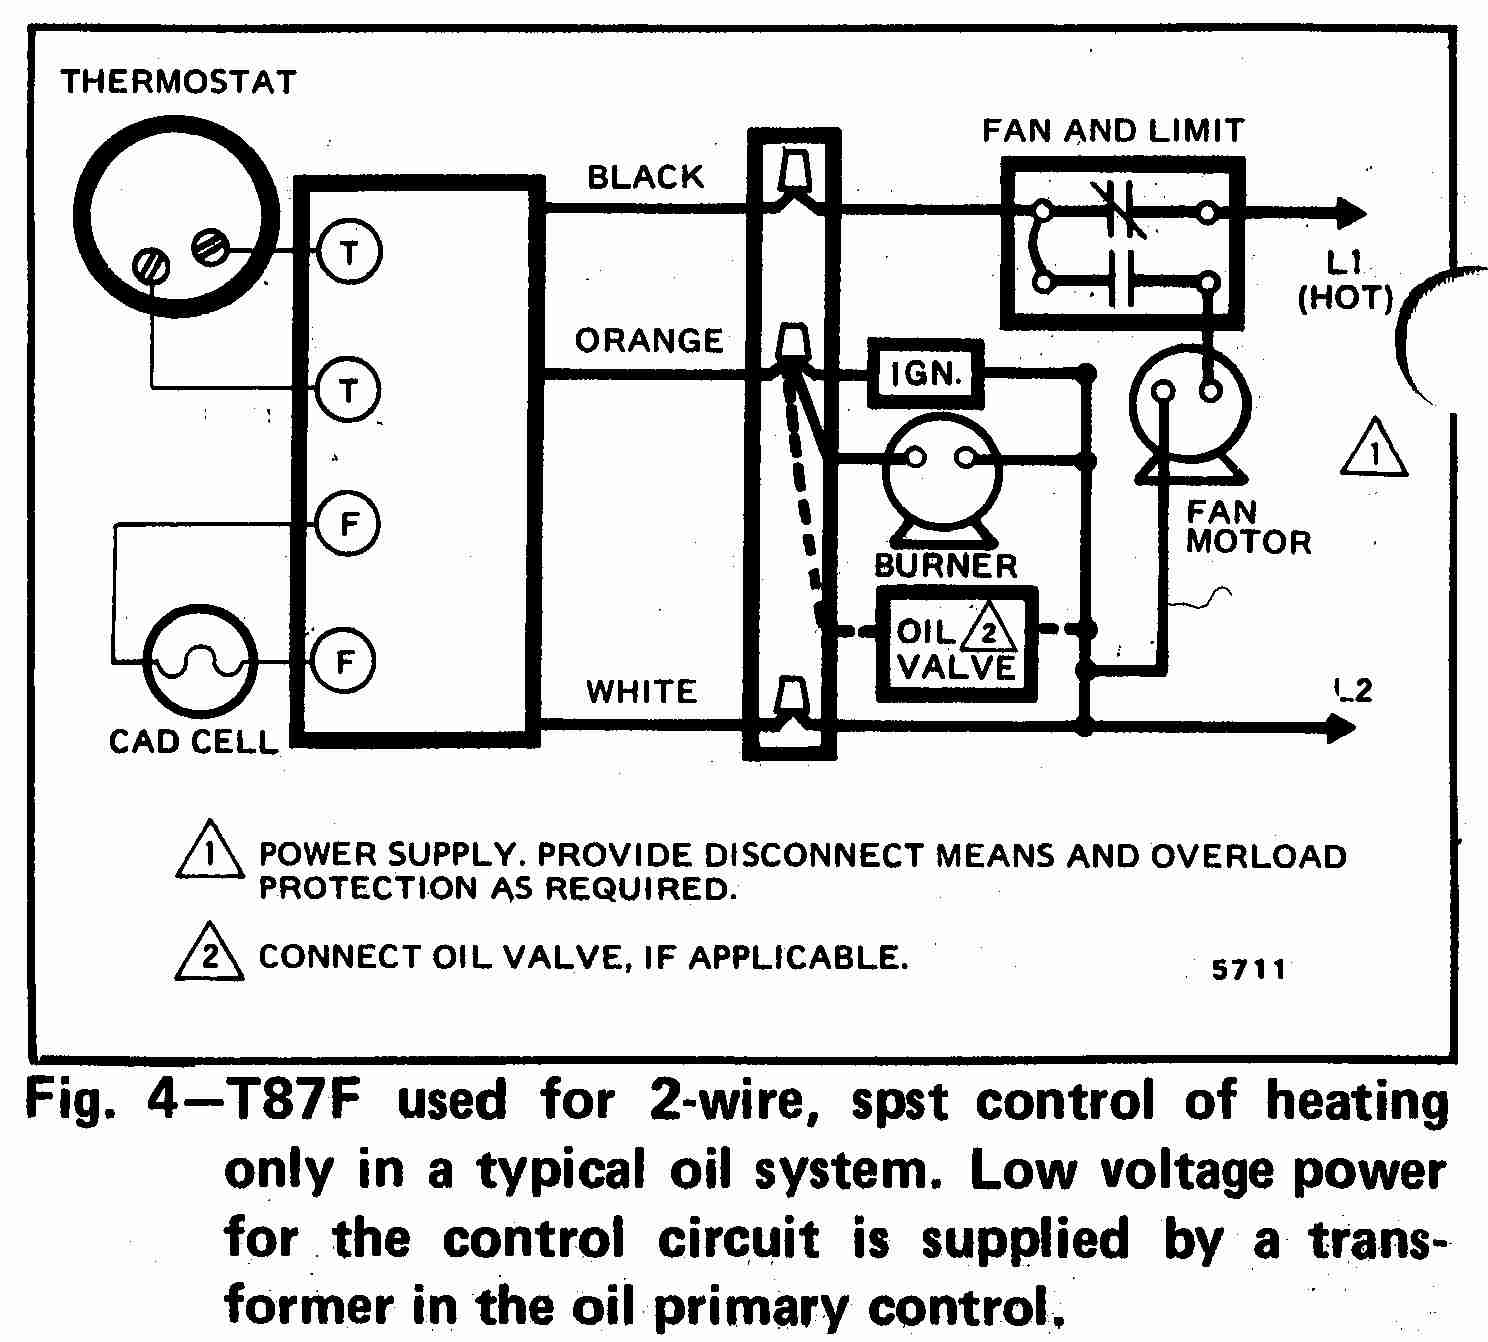 TT_T87F_0002_2W_DJF room thermostat wiring diagrams for hvac systems Basic Outlet Wiring Diagrams at virtualis.co